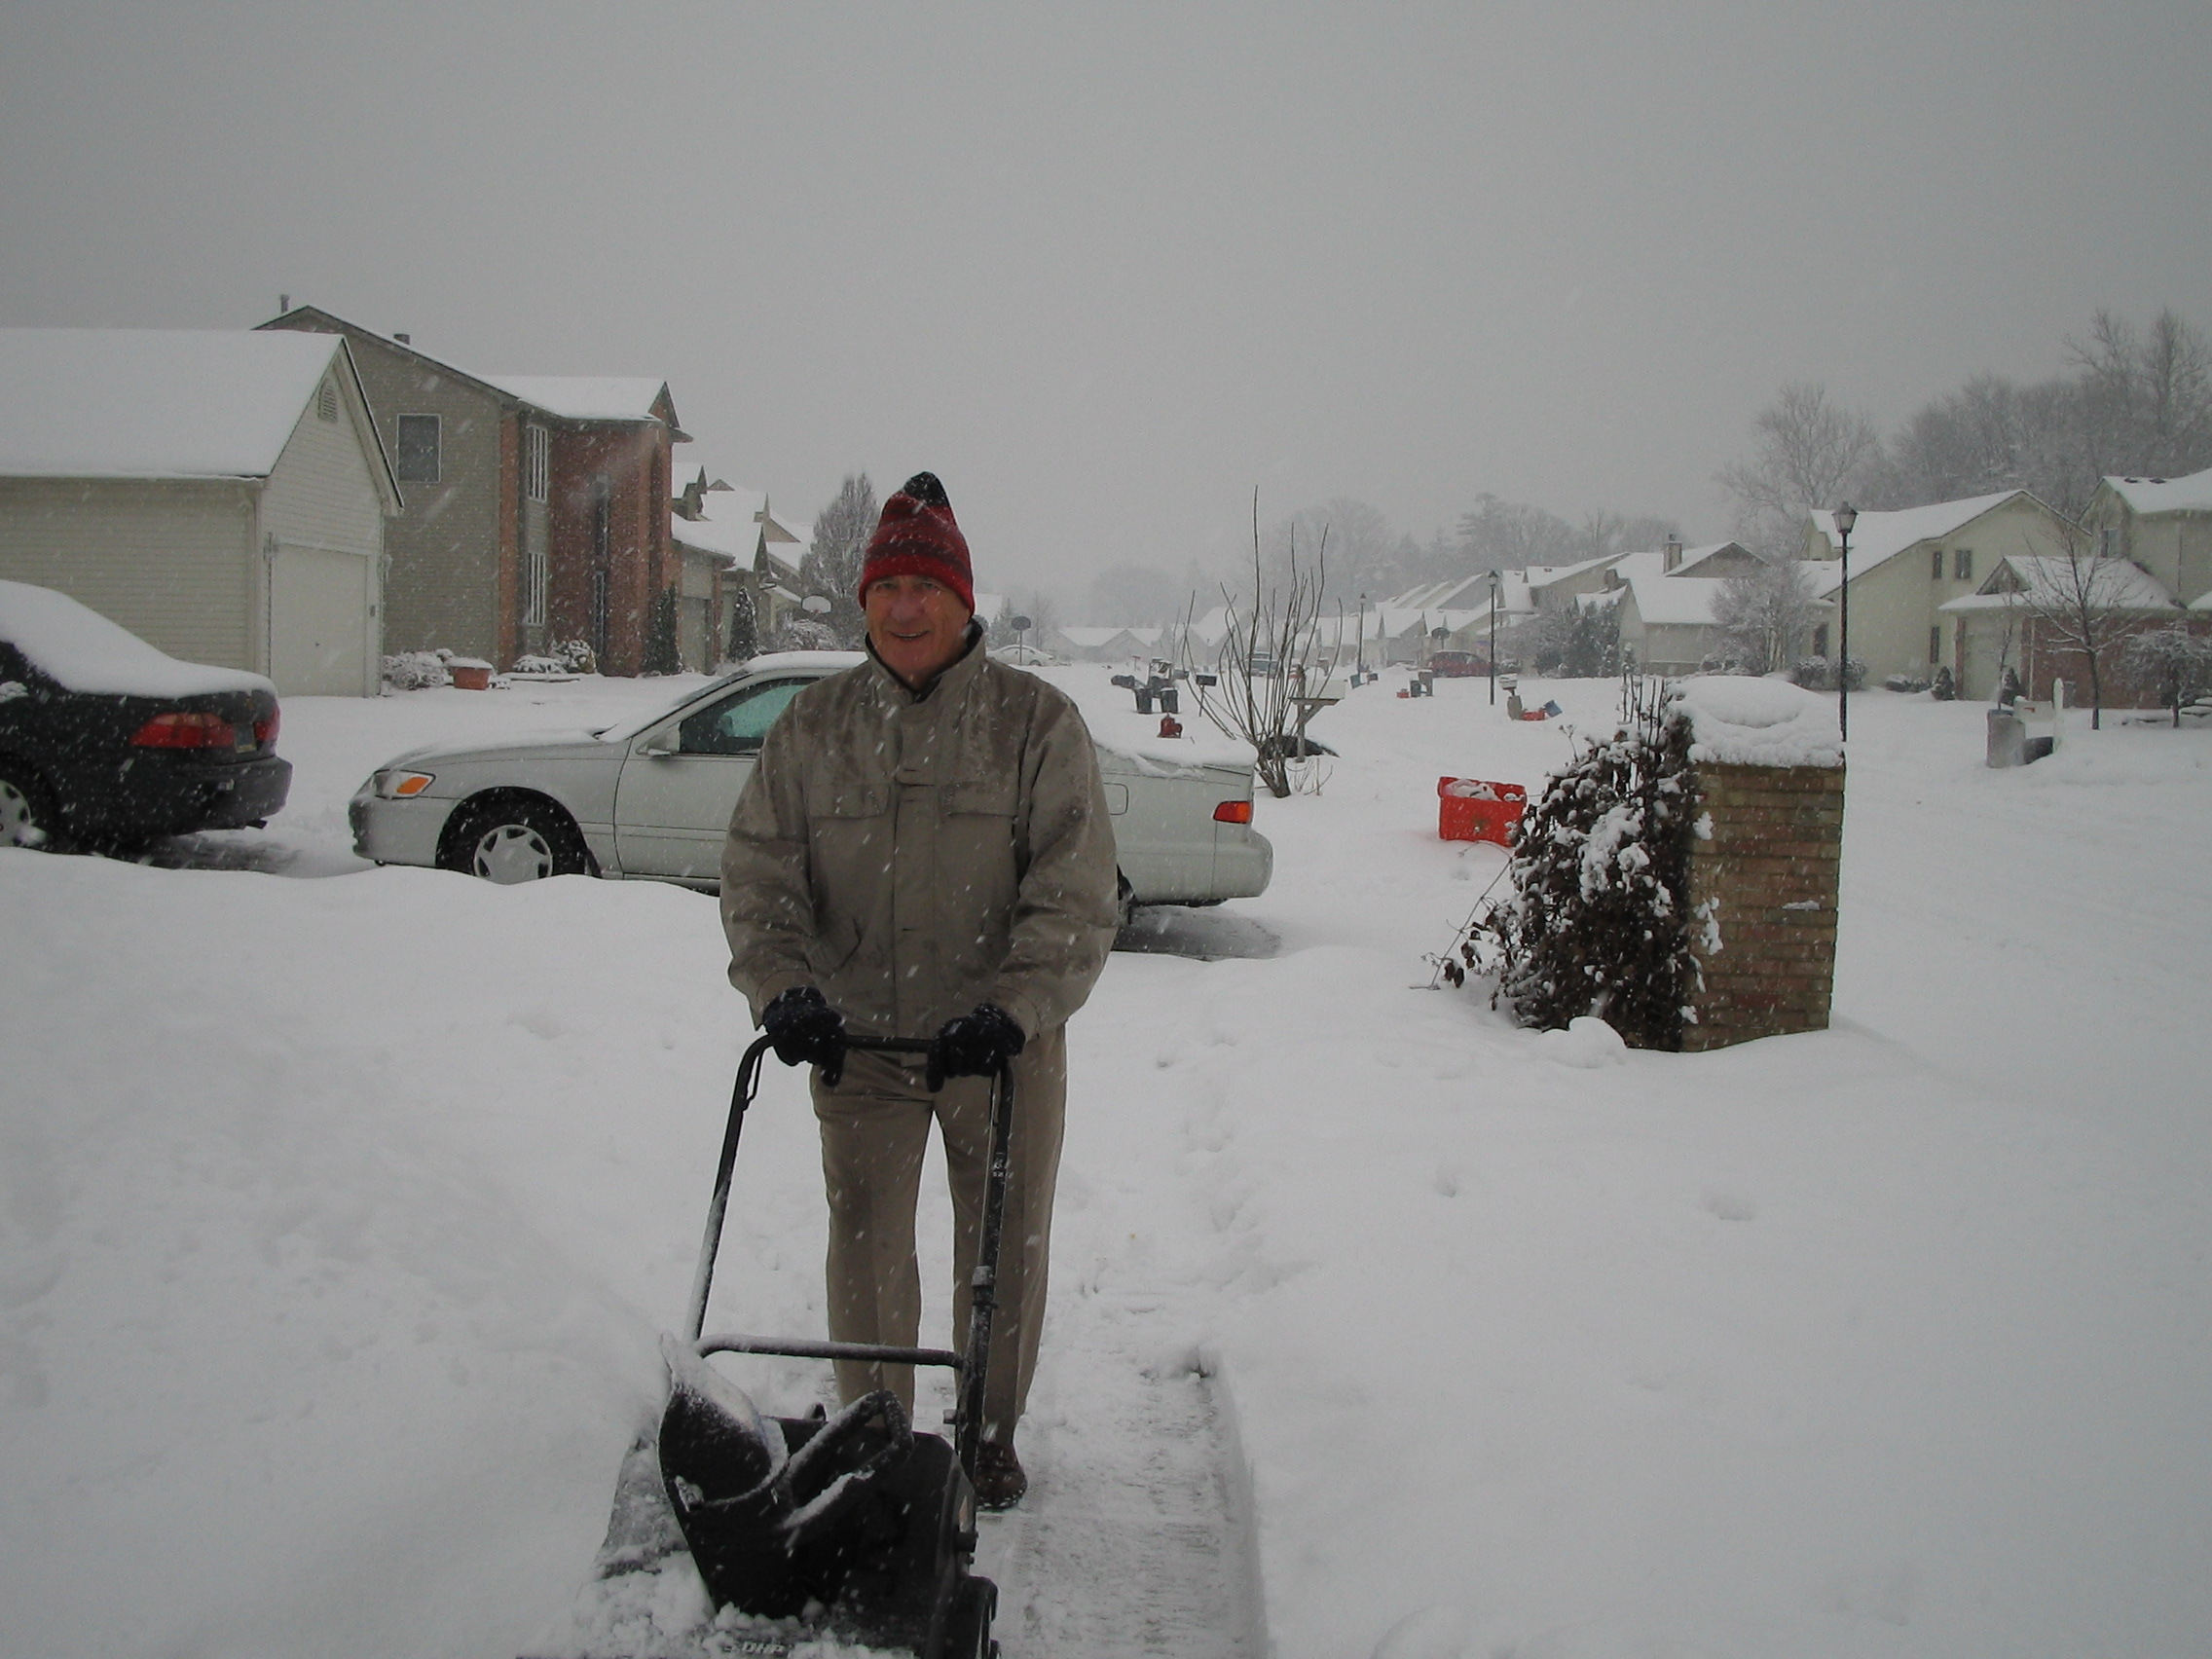 2005-12-15.snow_thrower.arthur.2.livonia.mi.us